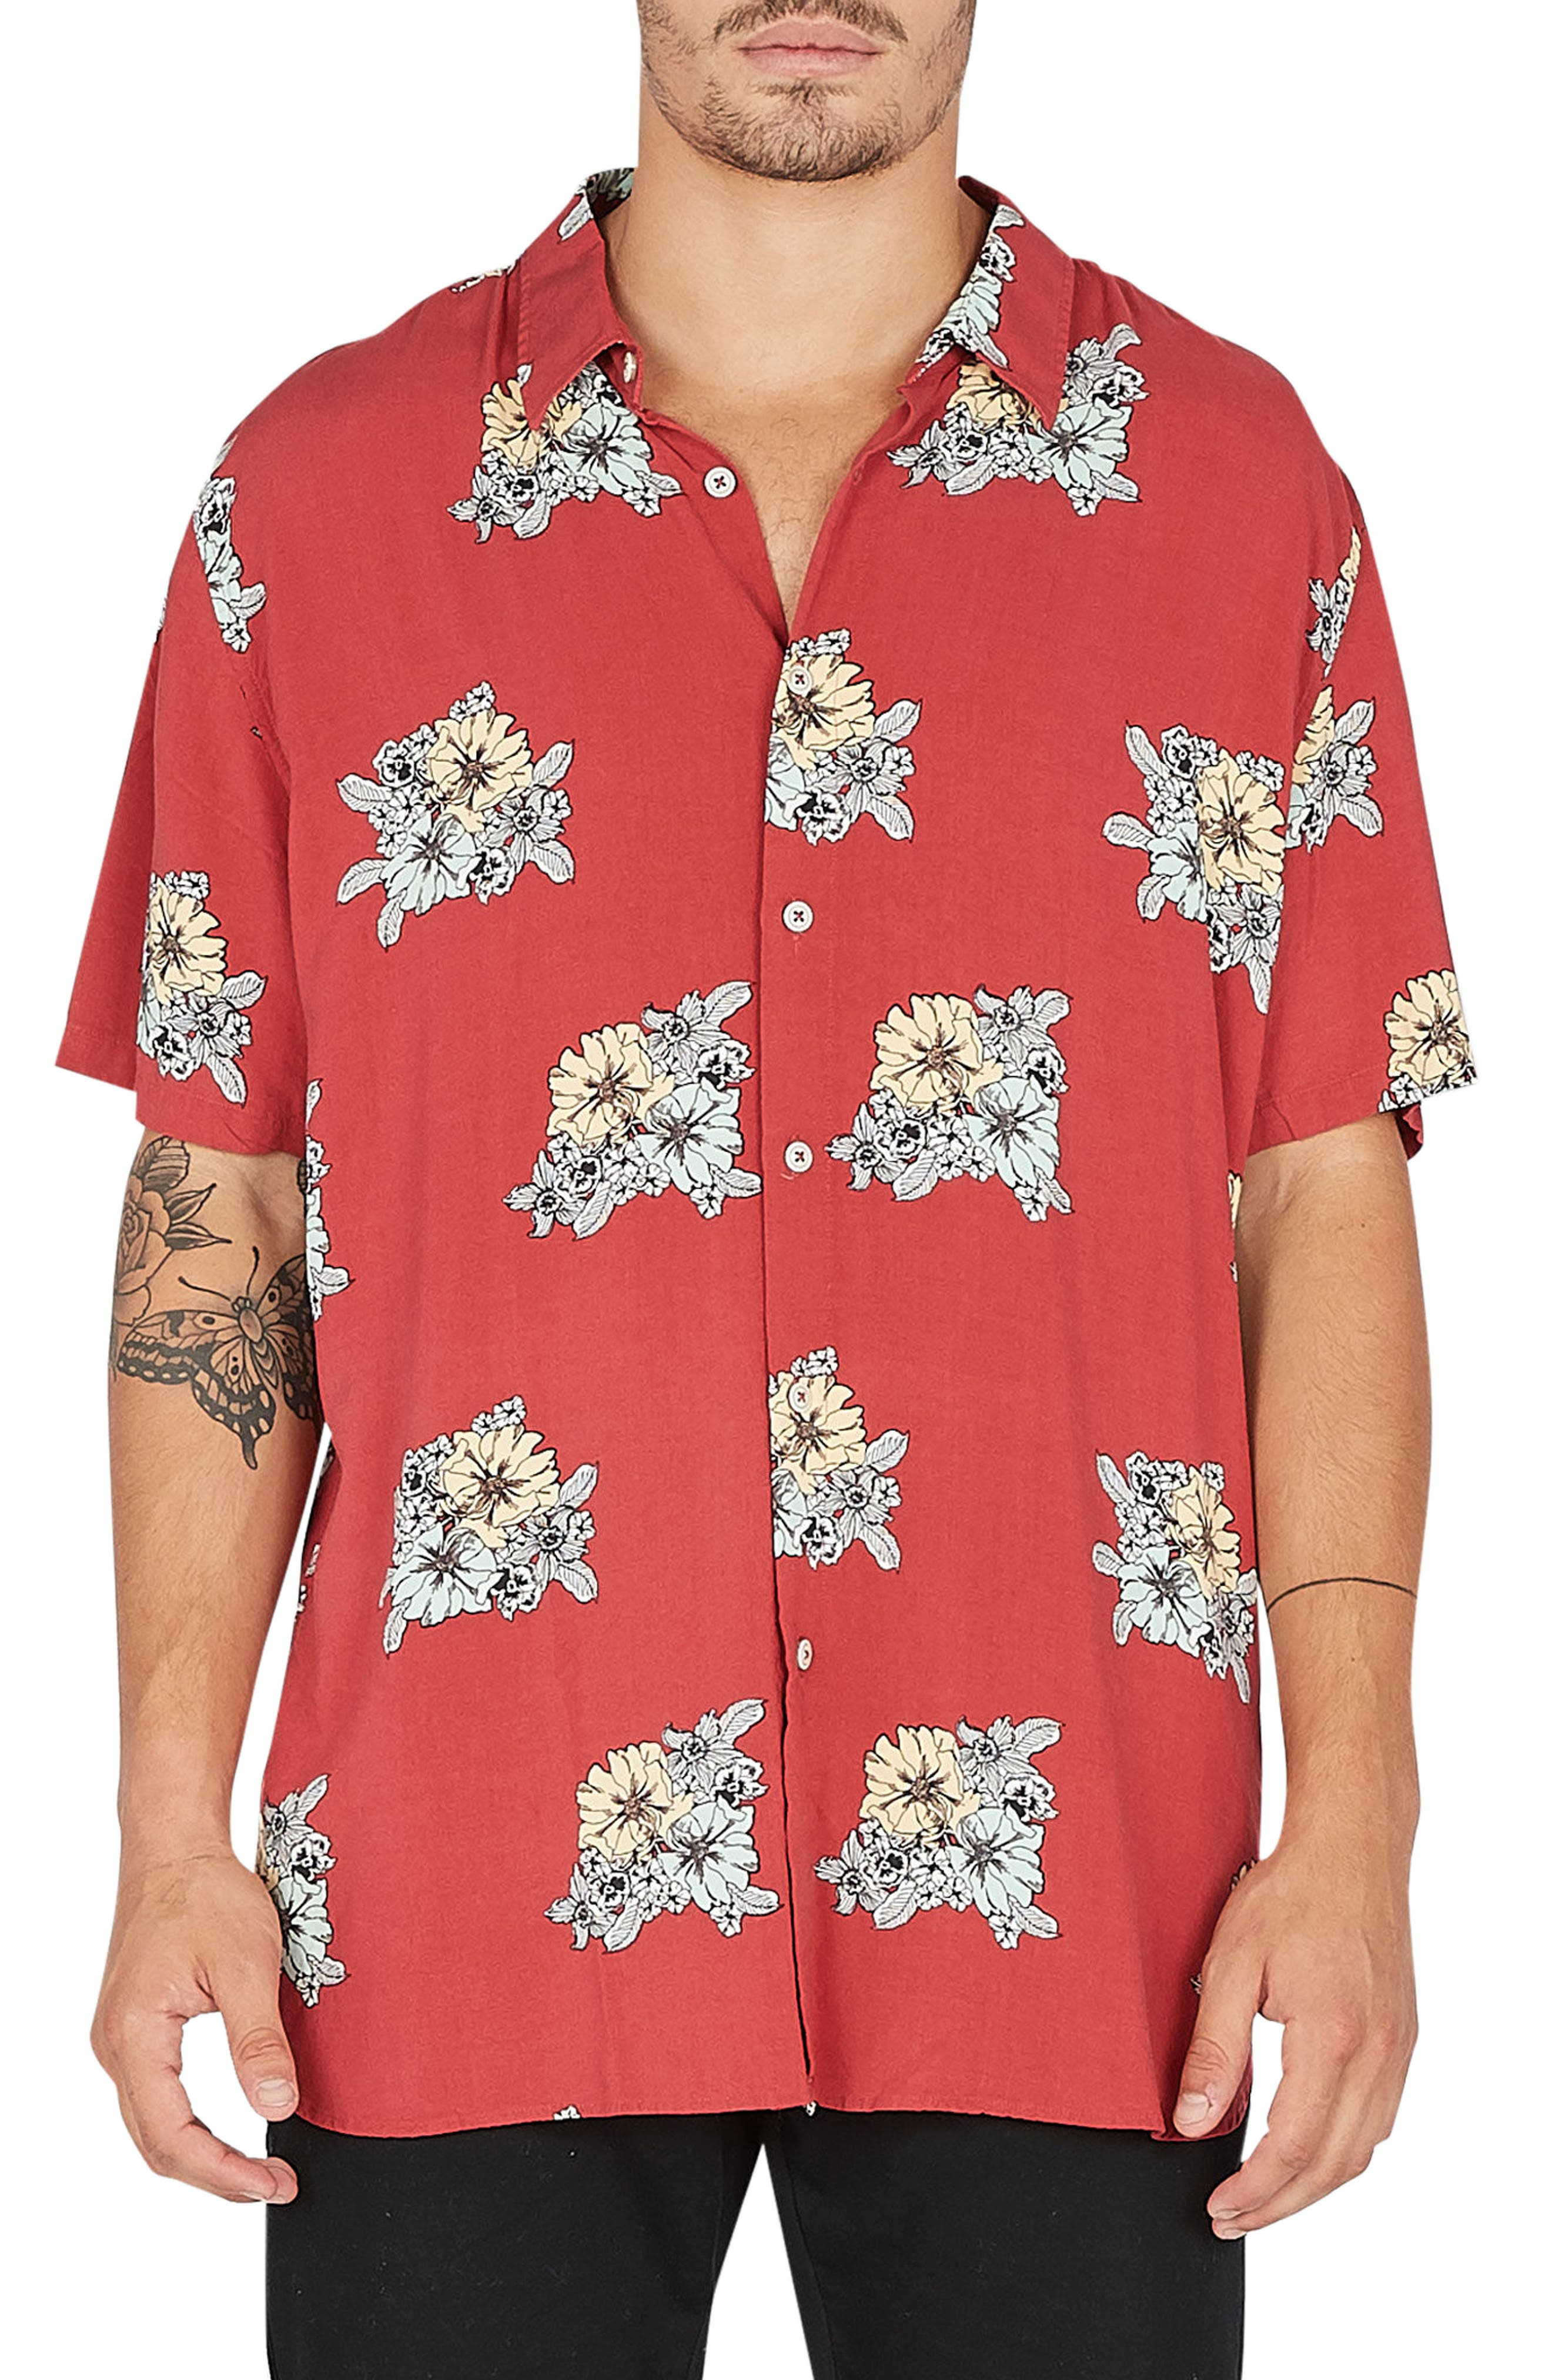 Holiday Woven Shirt,                         Main,                         color, Red Floral